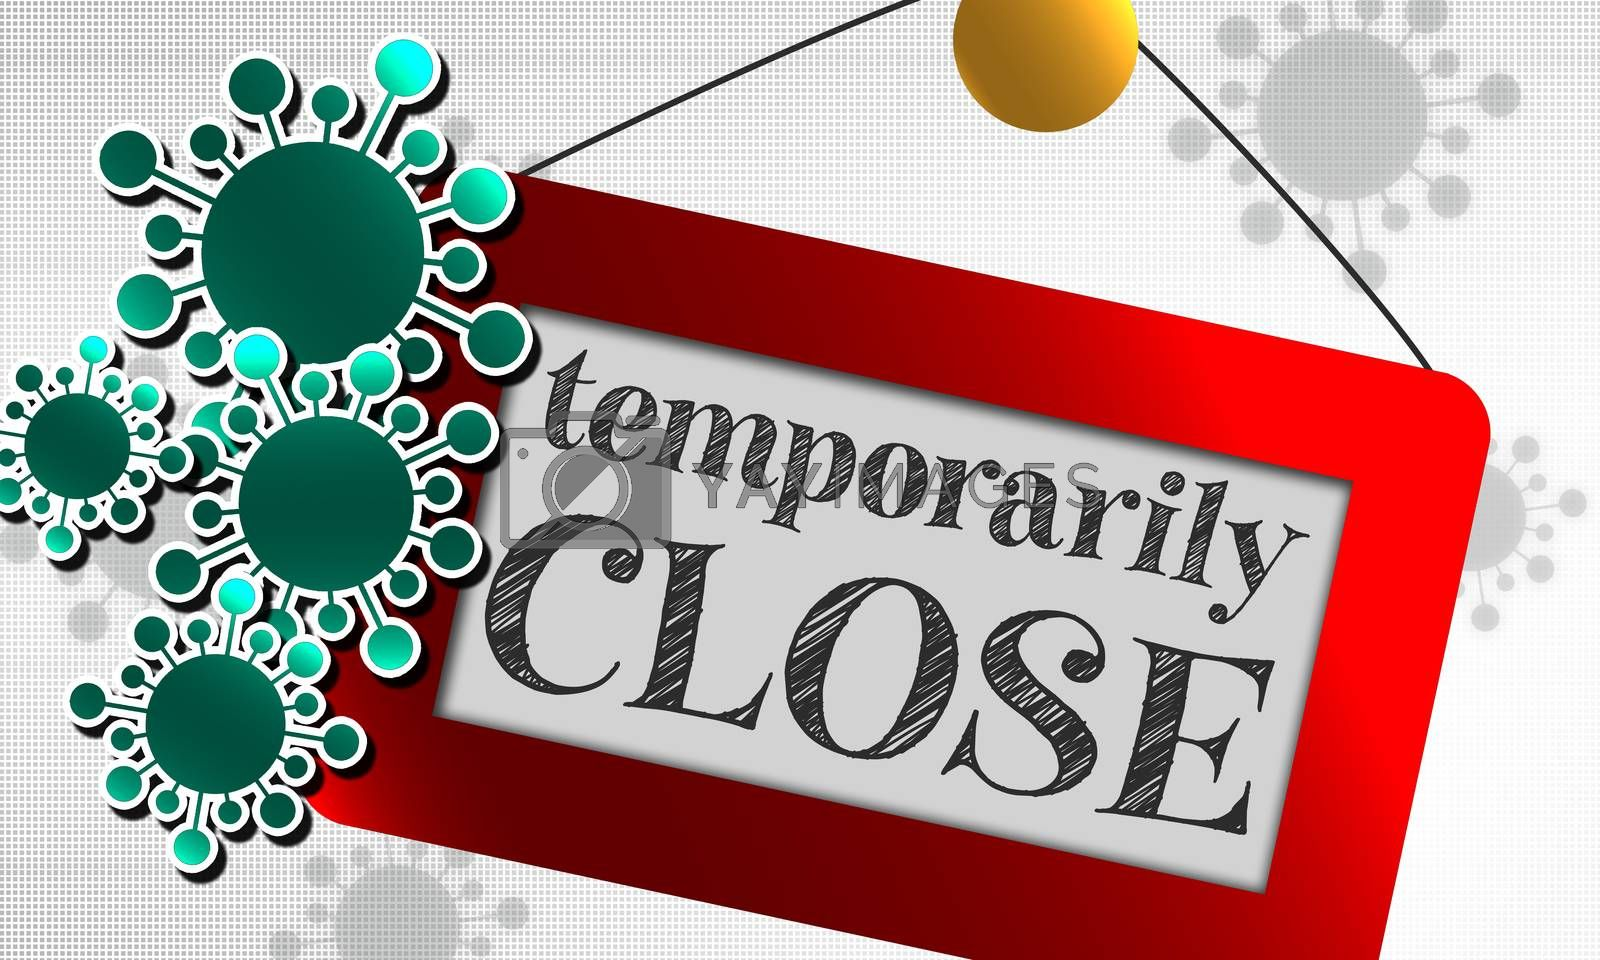 Temporarily closed sign due to virus, 3d rendering